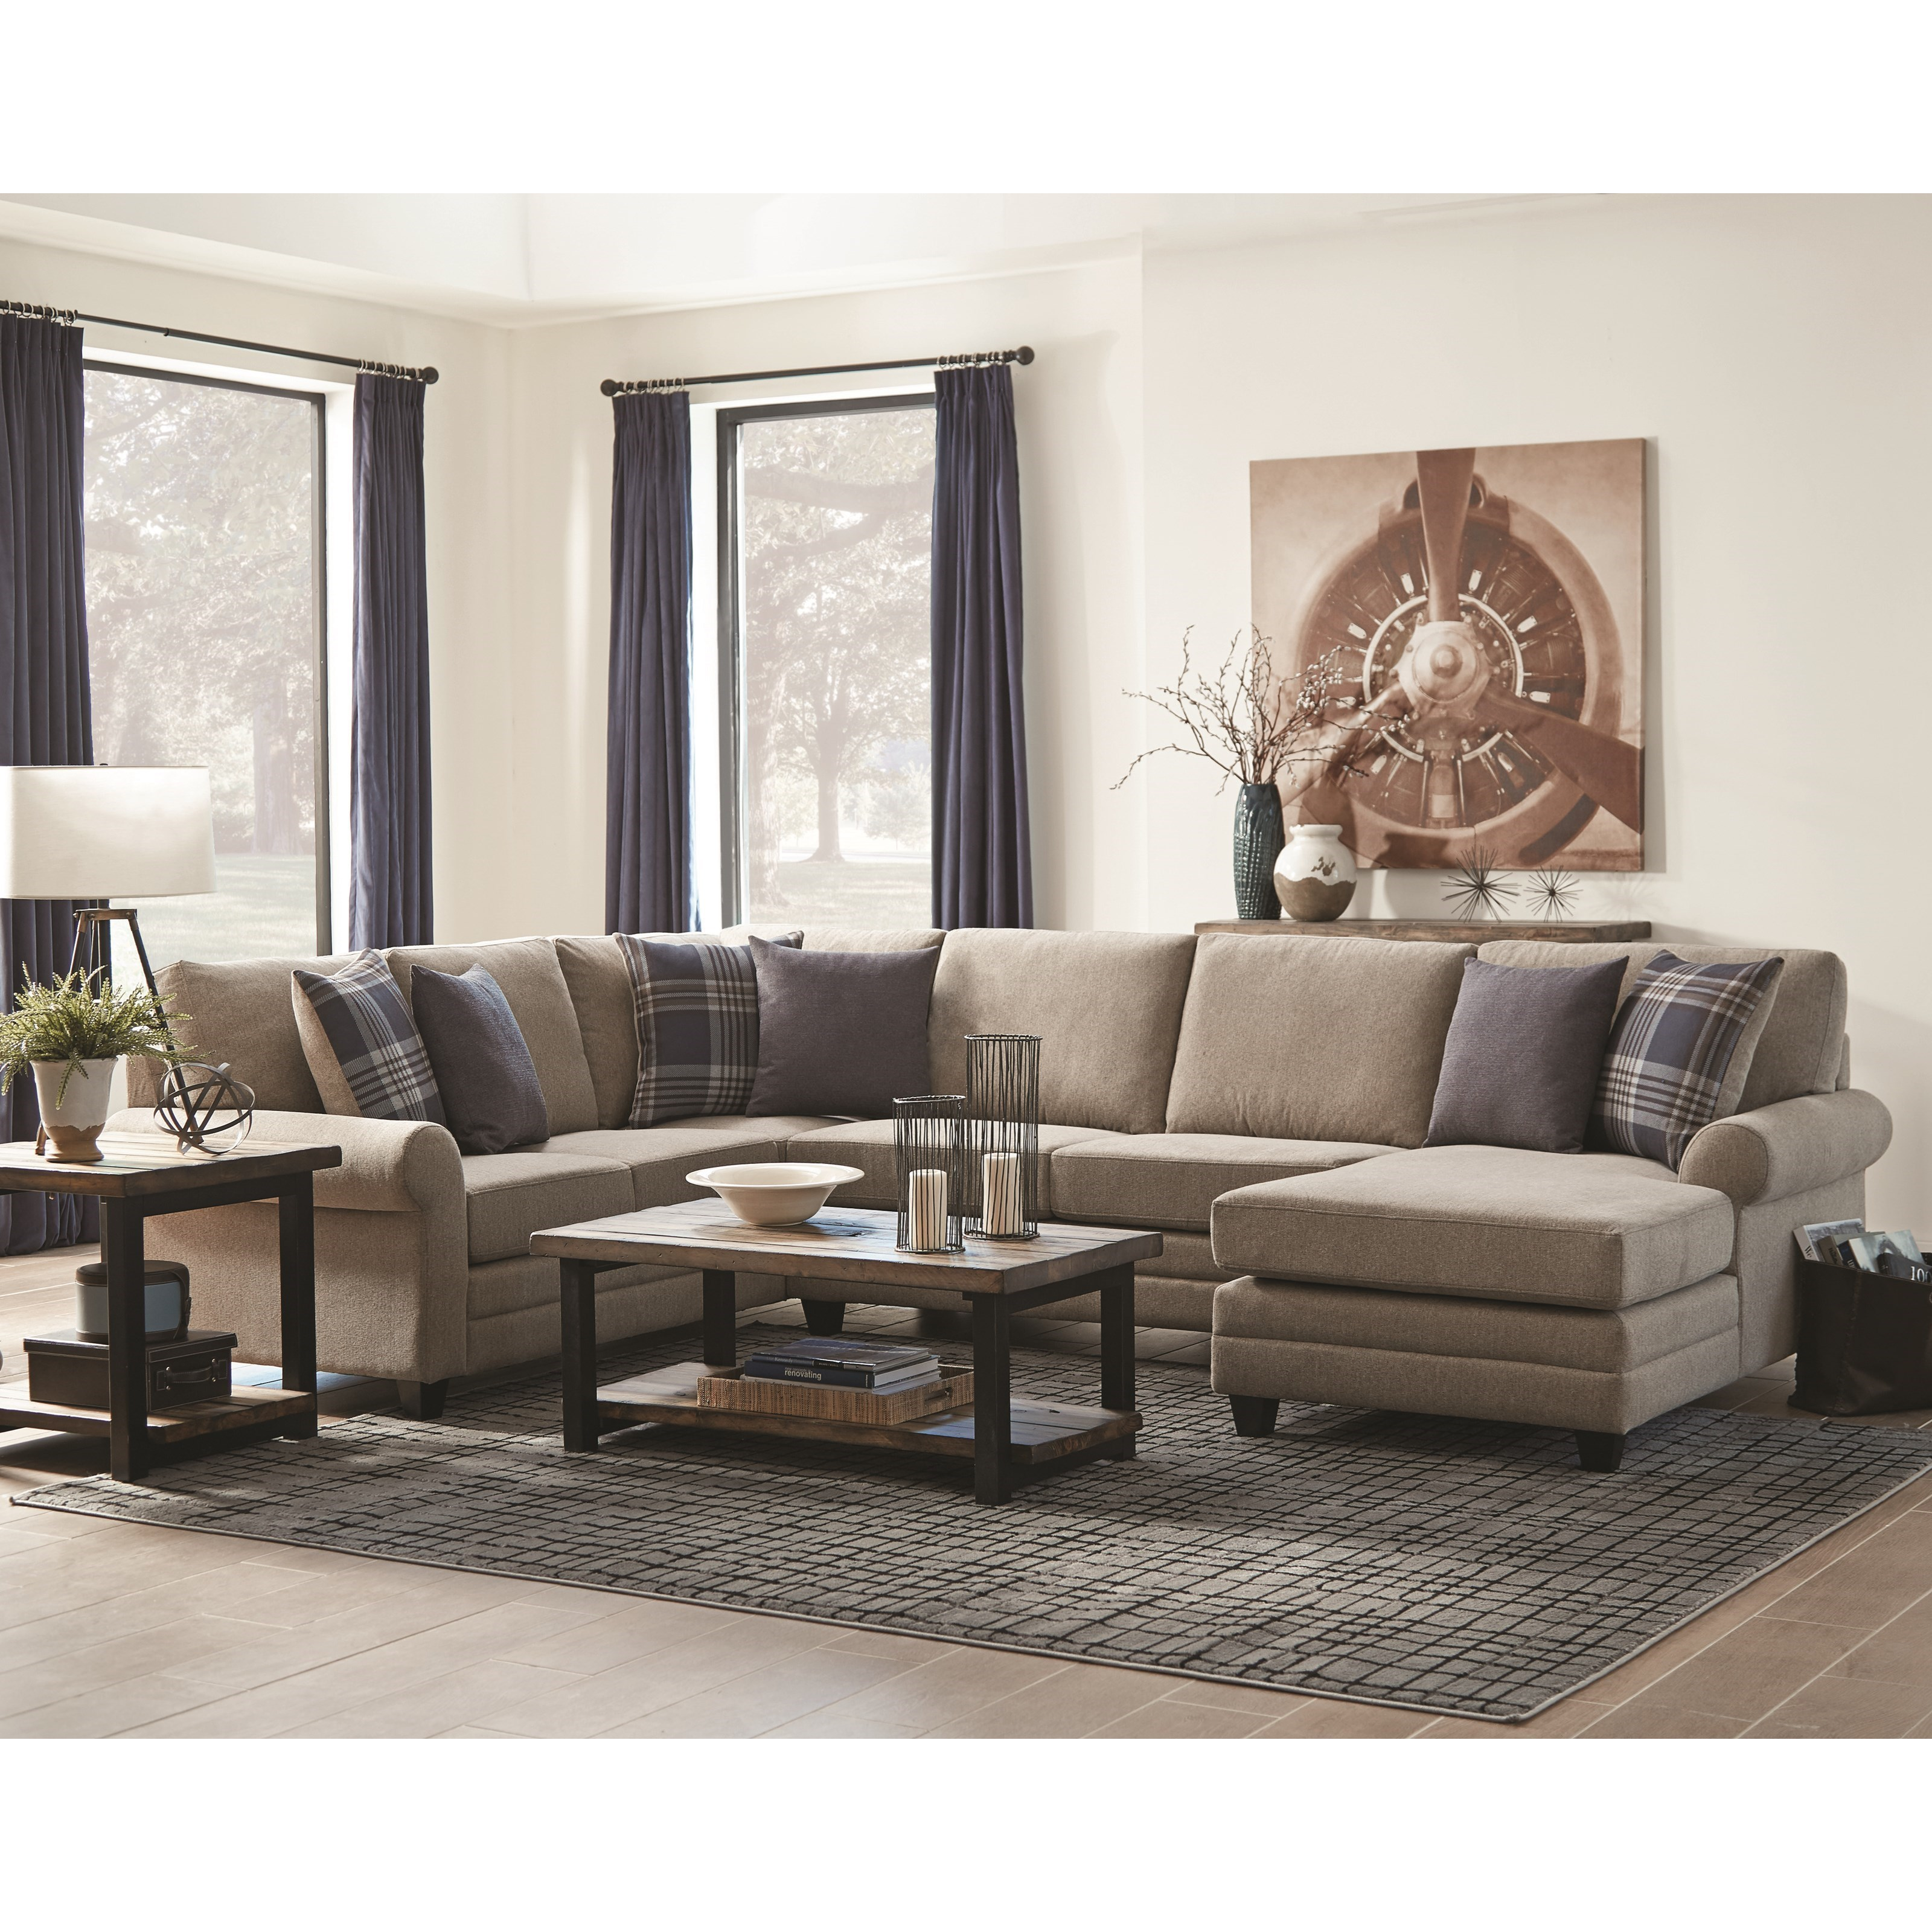 Scott Living Summerland Chaise Sectional With Rolled Armrests